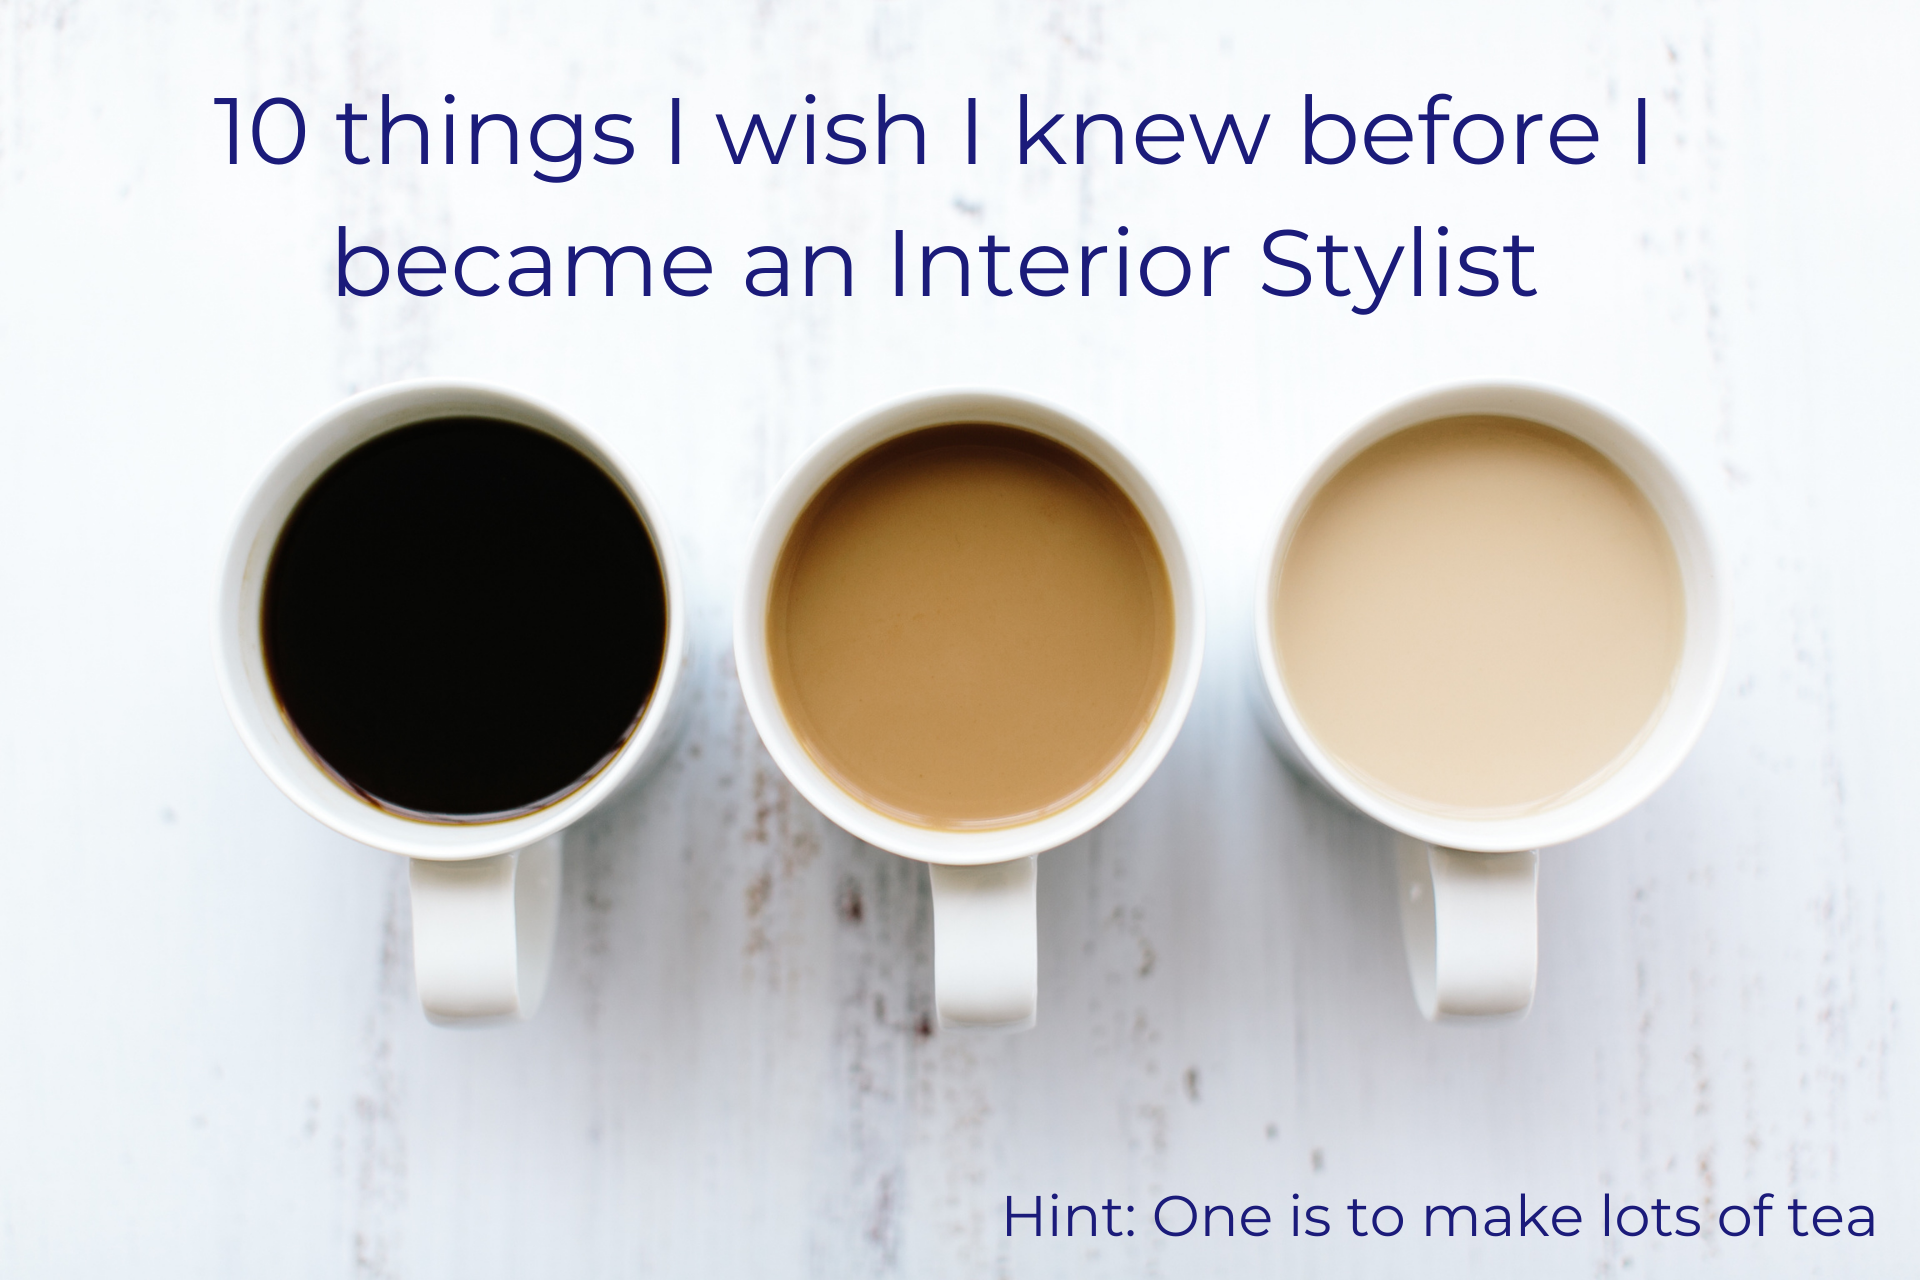 Learning the ropes is how we all become good interior stylists. Here's 10 things I wish I knew before I became an Interior Stylist